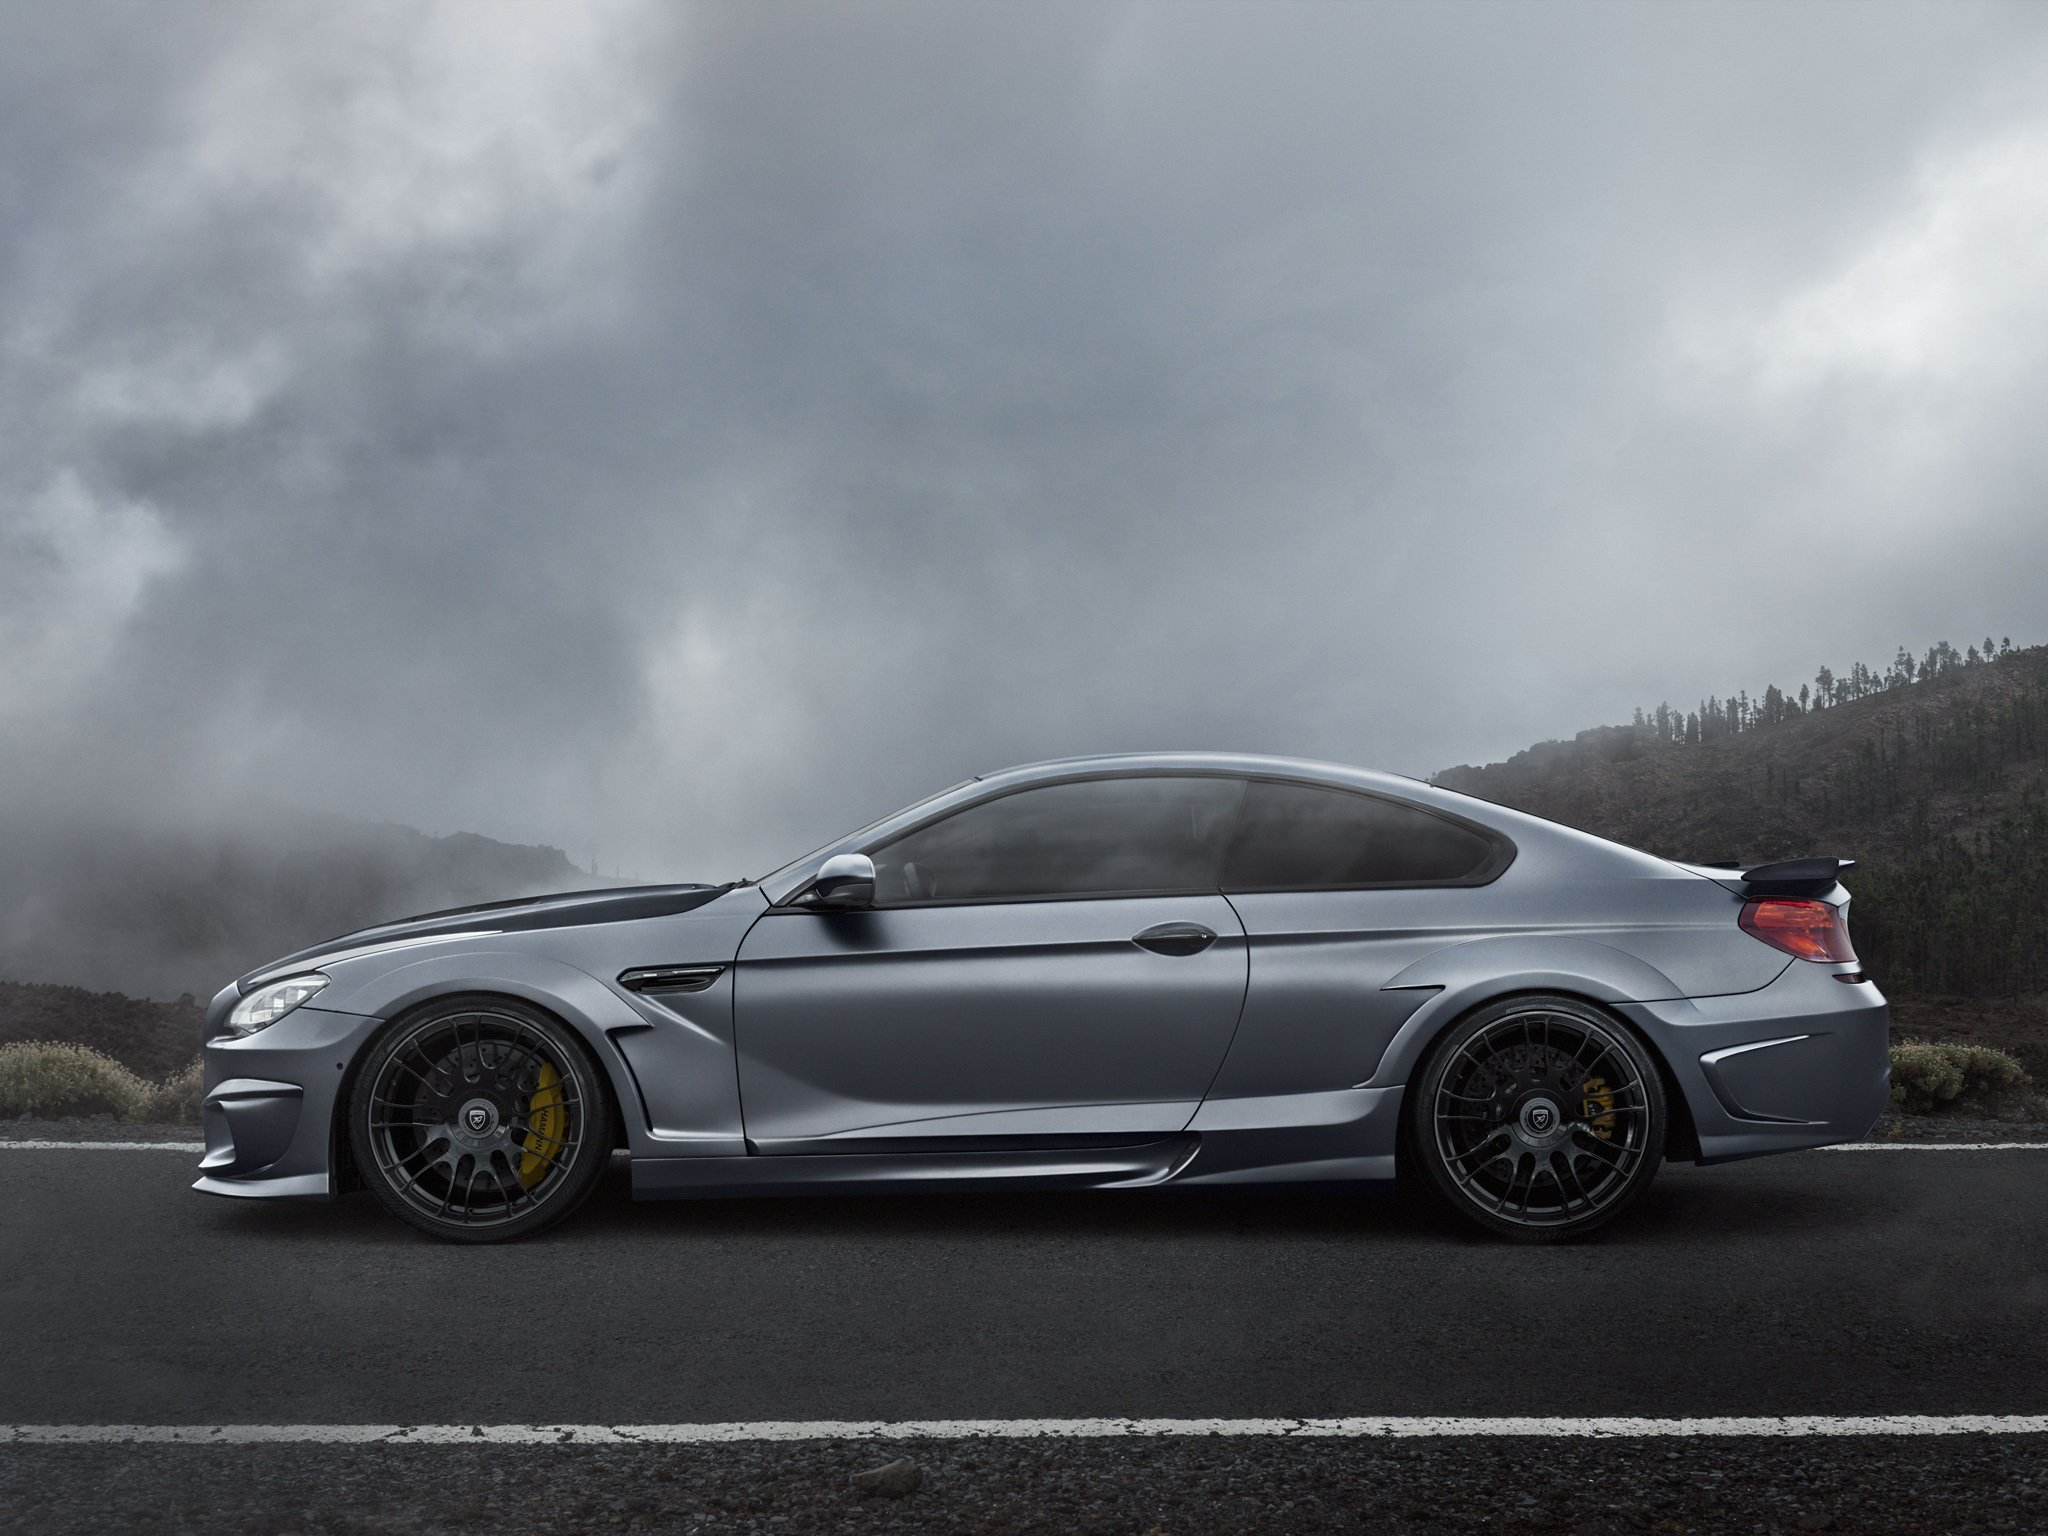 Bmw 6er F13 Tuning Bmw Coupe F13 Tuning g